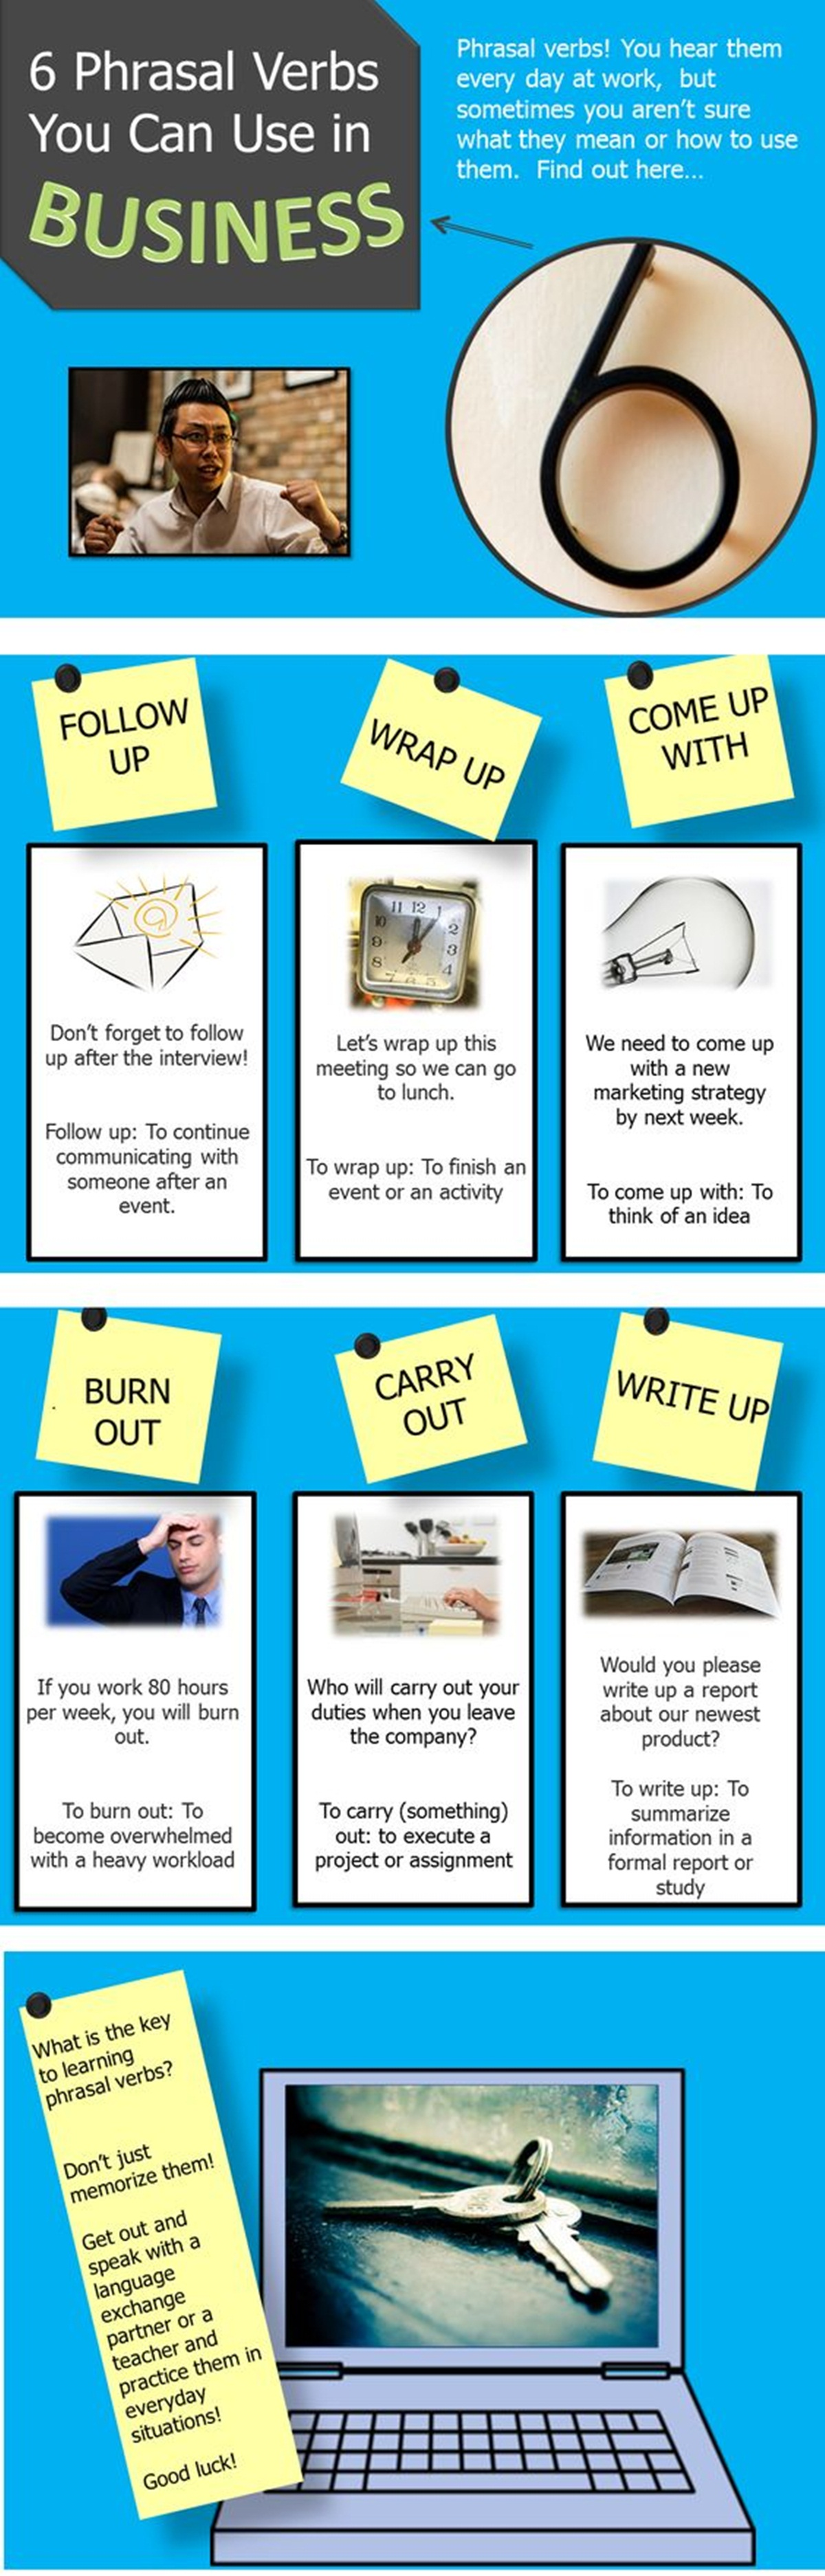 Six Phrasal Verbs You Can Use in BUSINESS 3